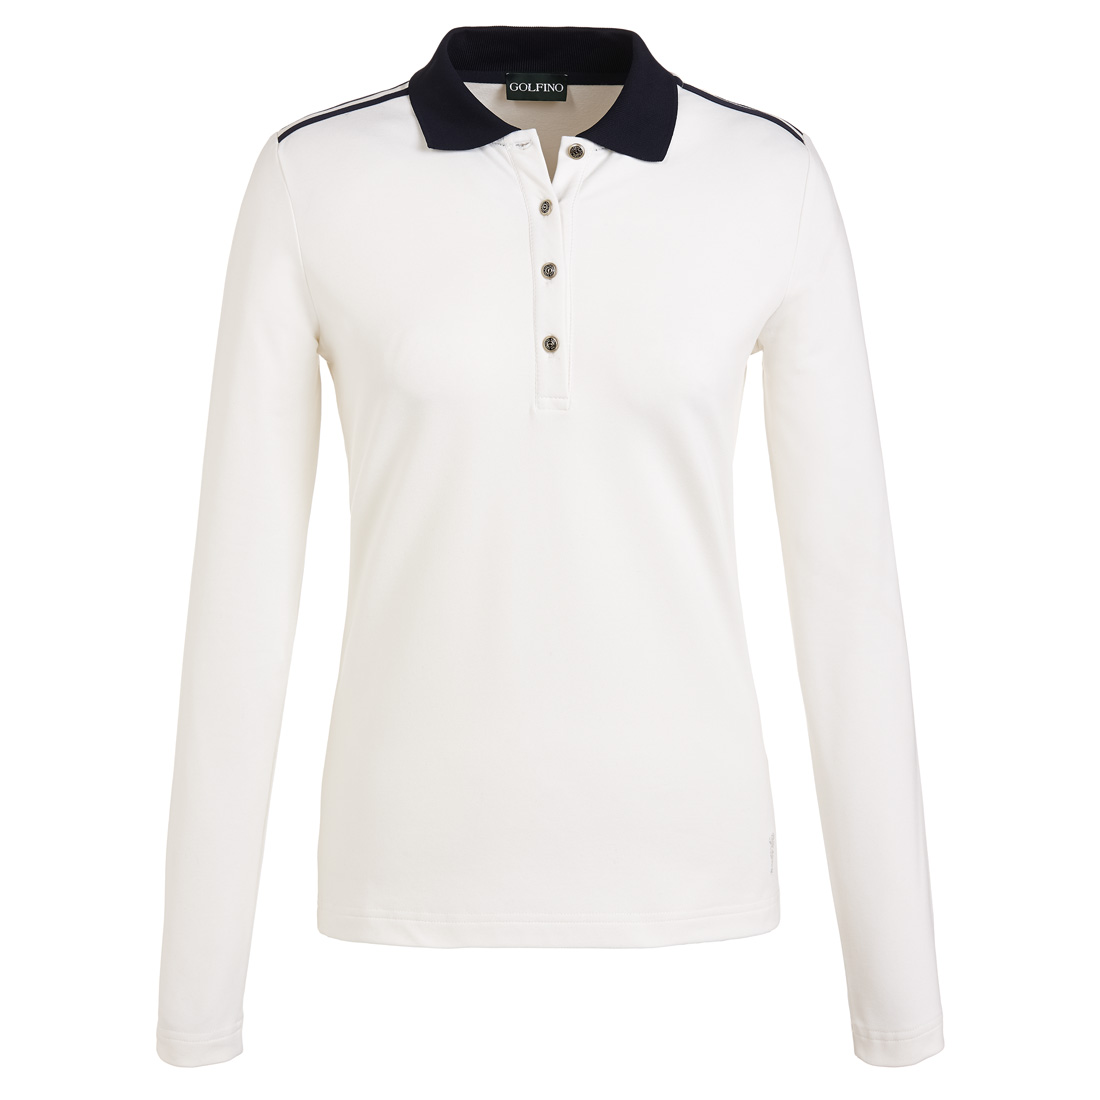 Ladies' long sleeve functional golf polo with sun protection